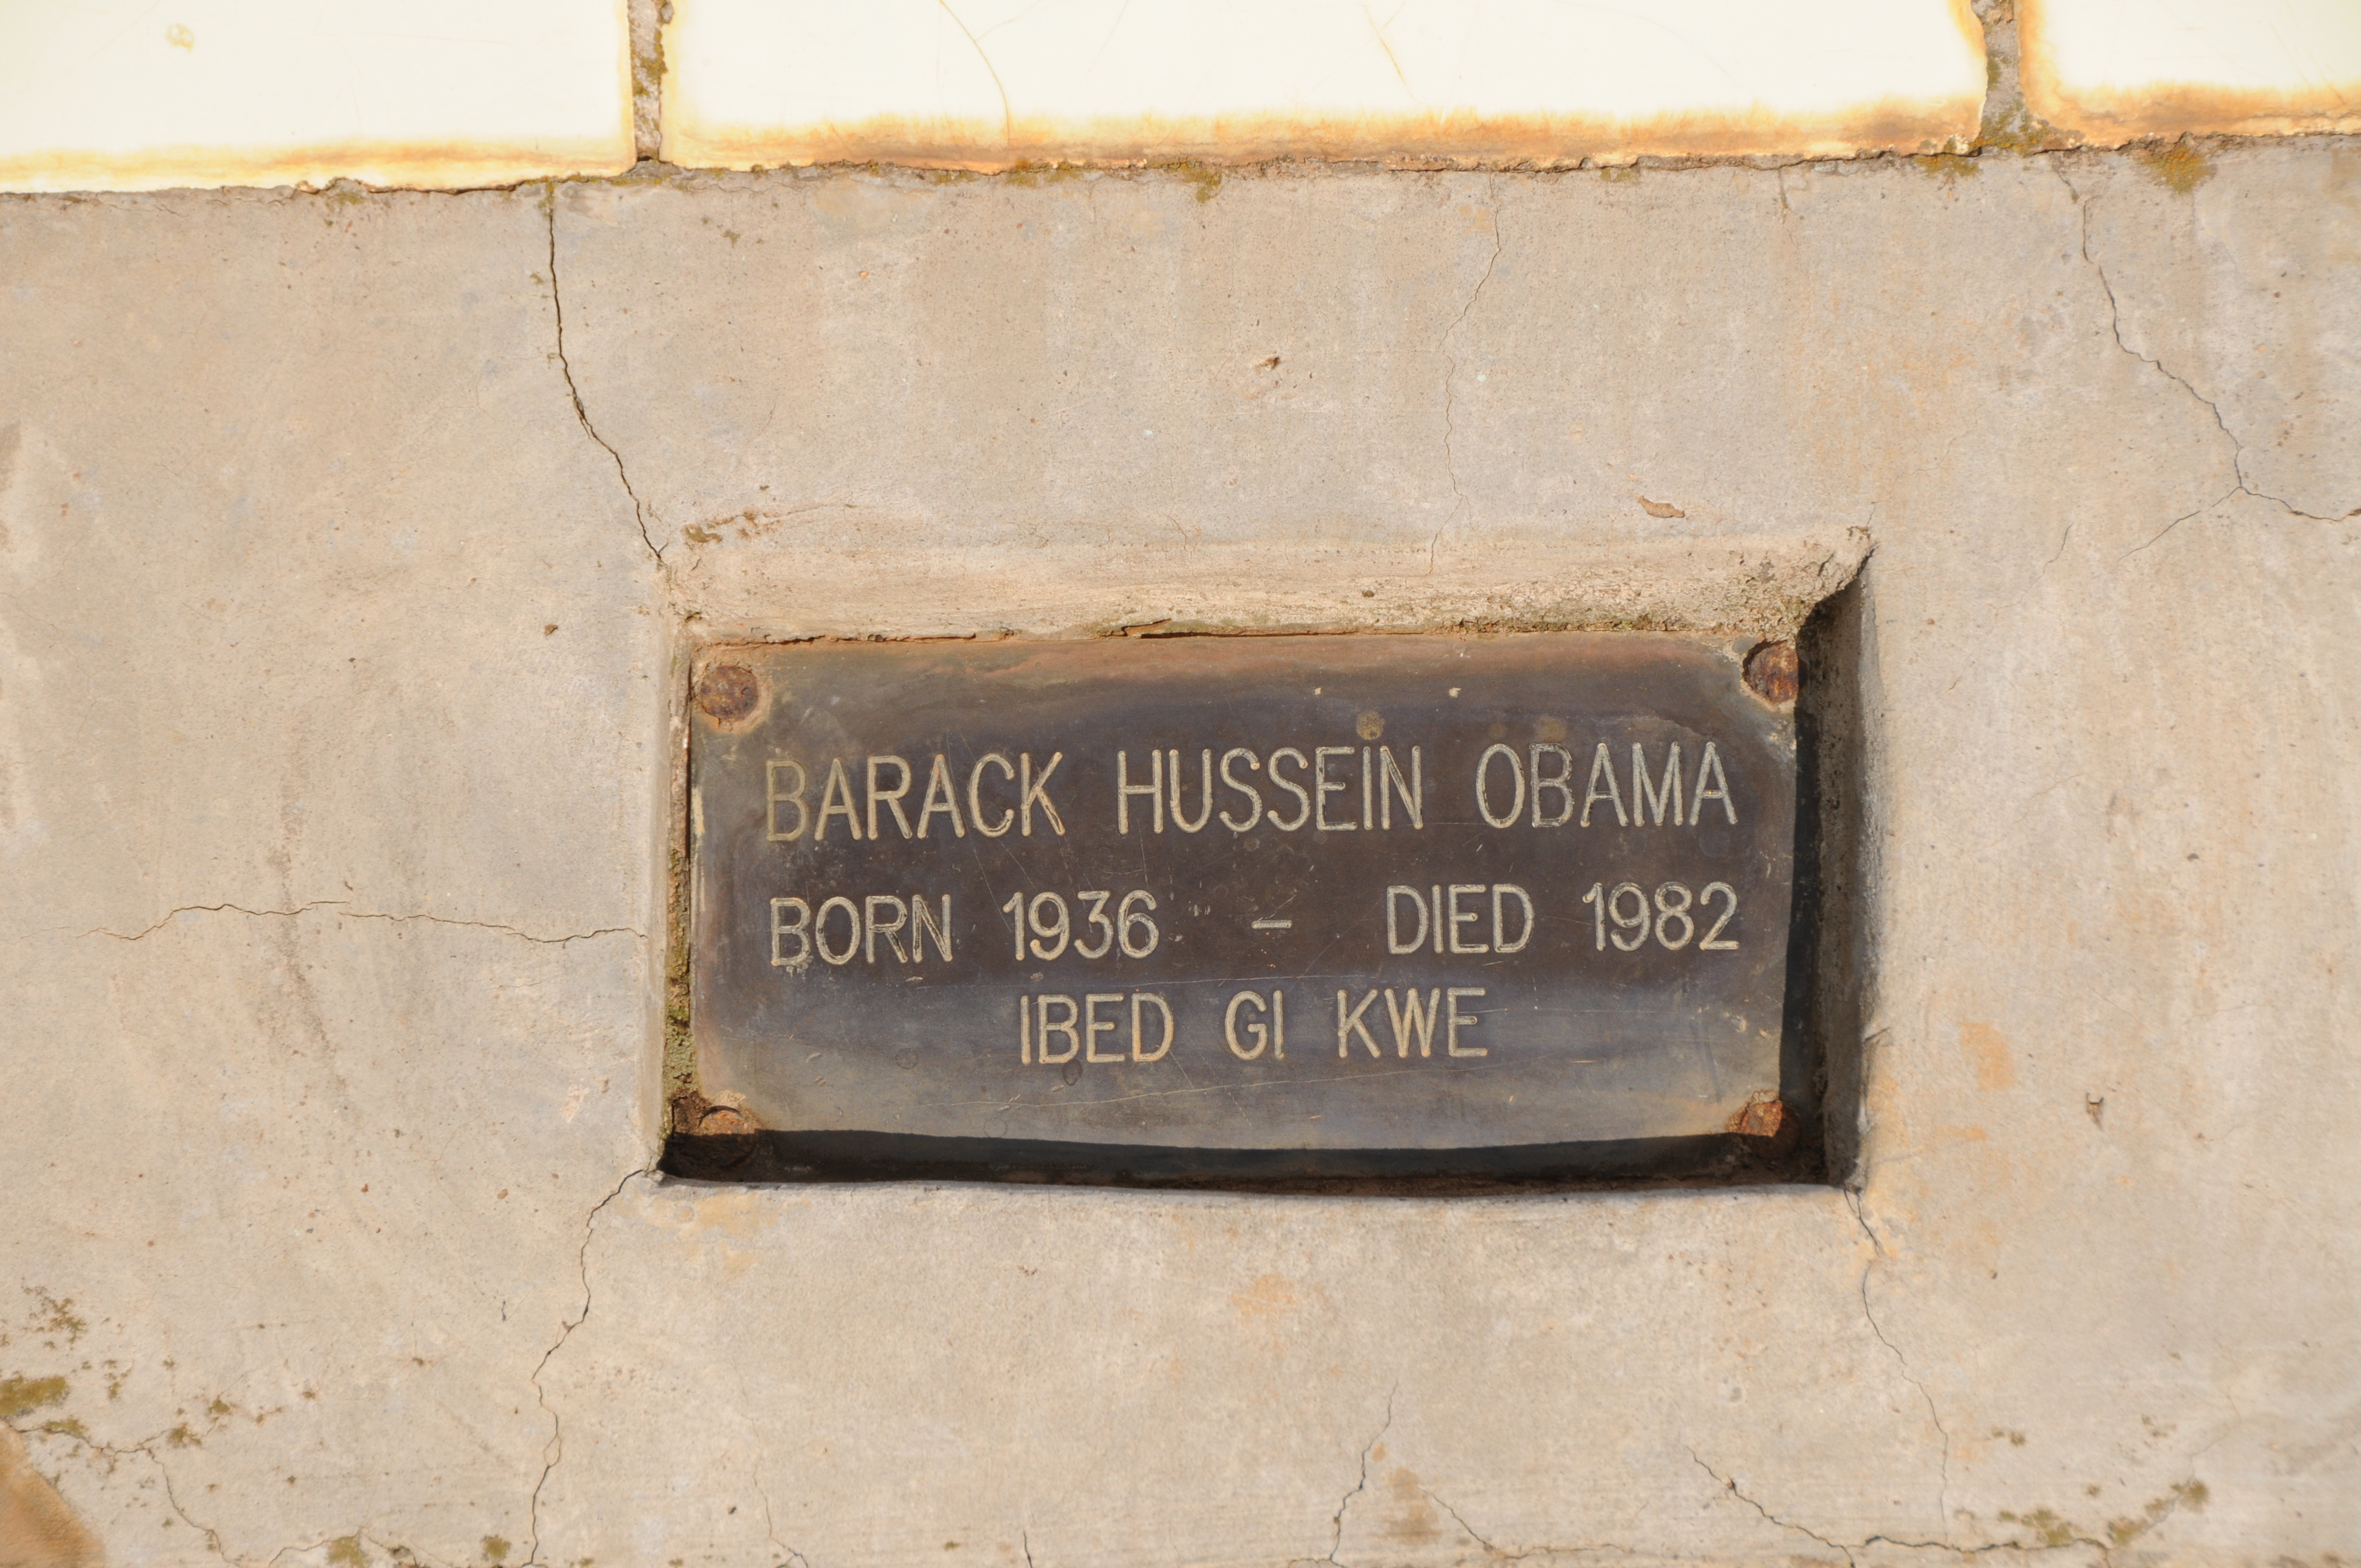 Kenya - Home of President Barack Obama's Grandmother Sarah